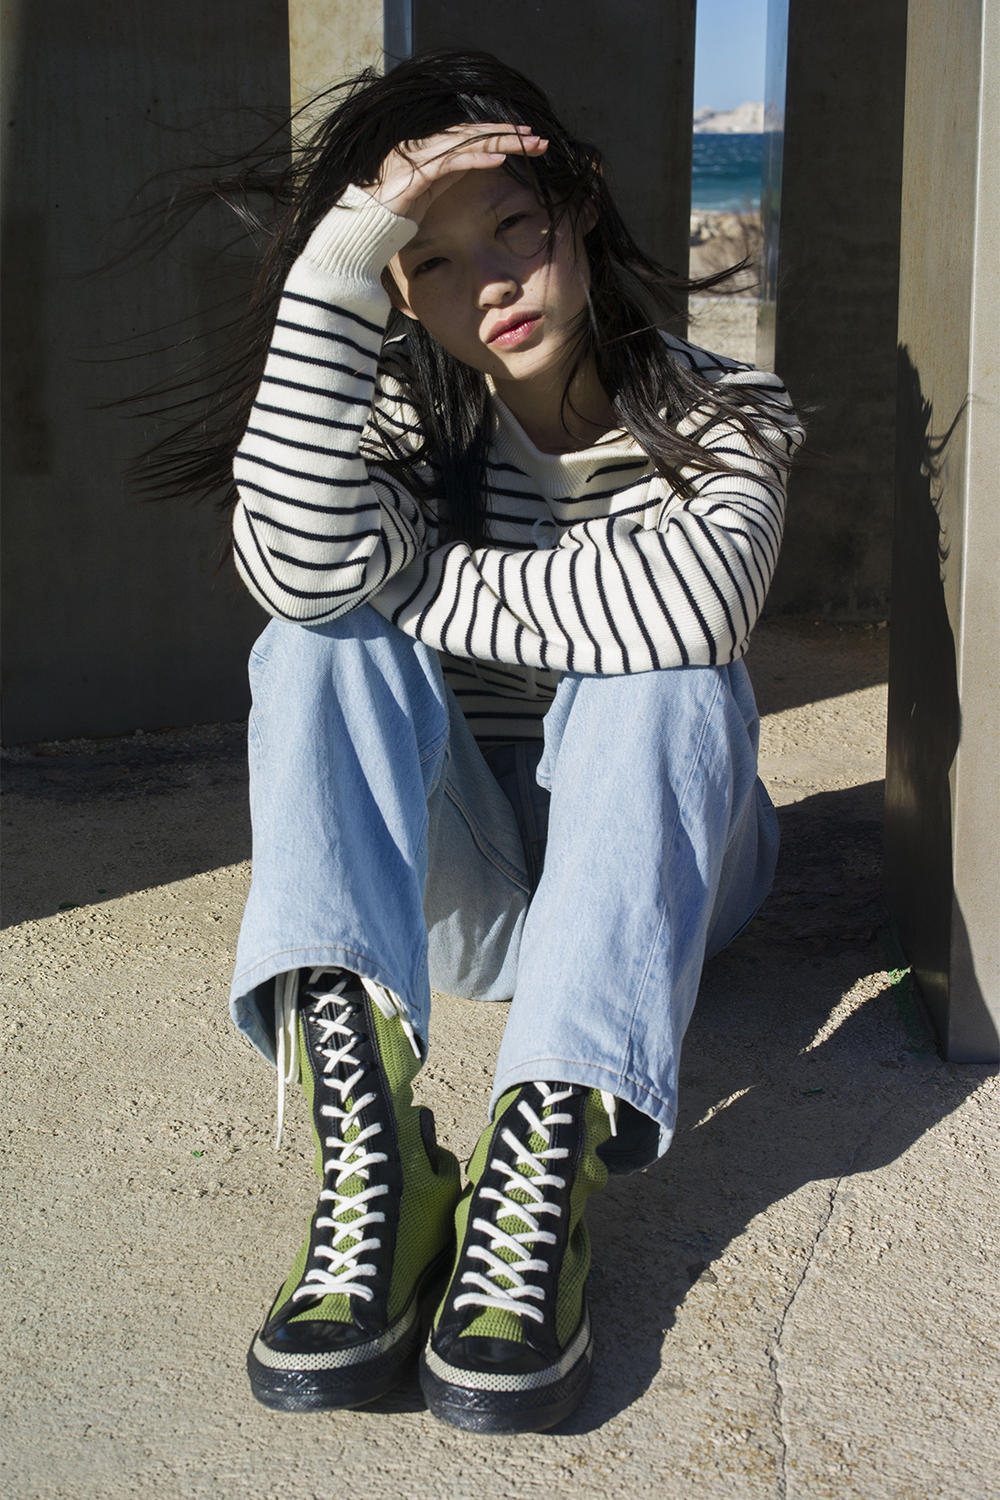 JW Anderson Converse Chuck Taylor All Star 70s New Classics Larry Clark Zine march april 2018 release date info drop sneakers shoes footwear collaboration